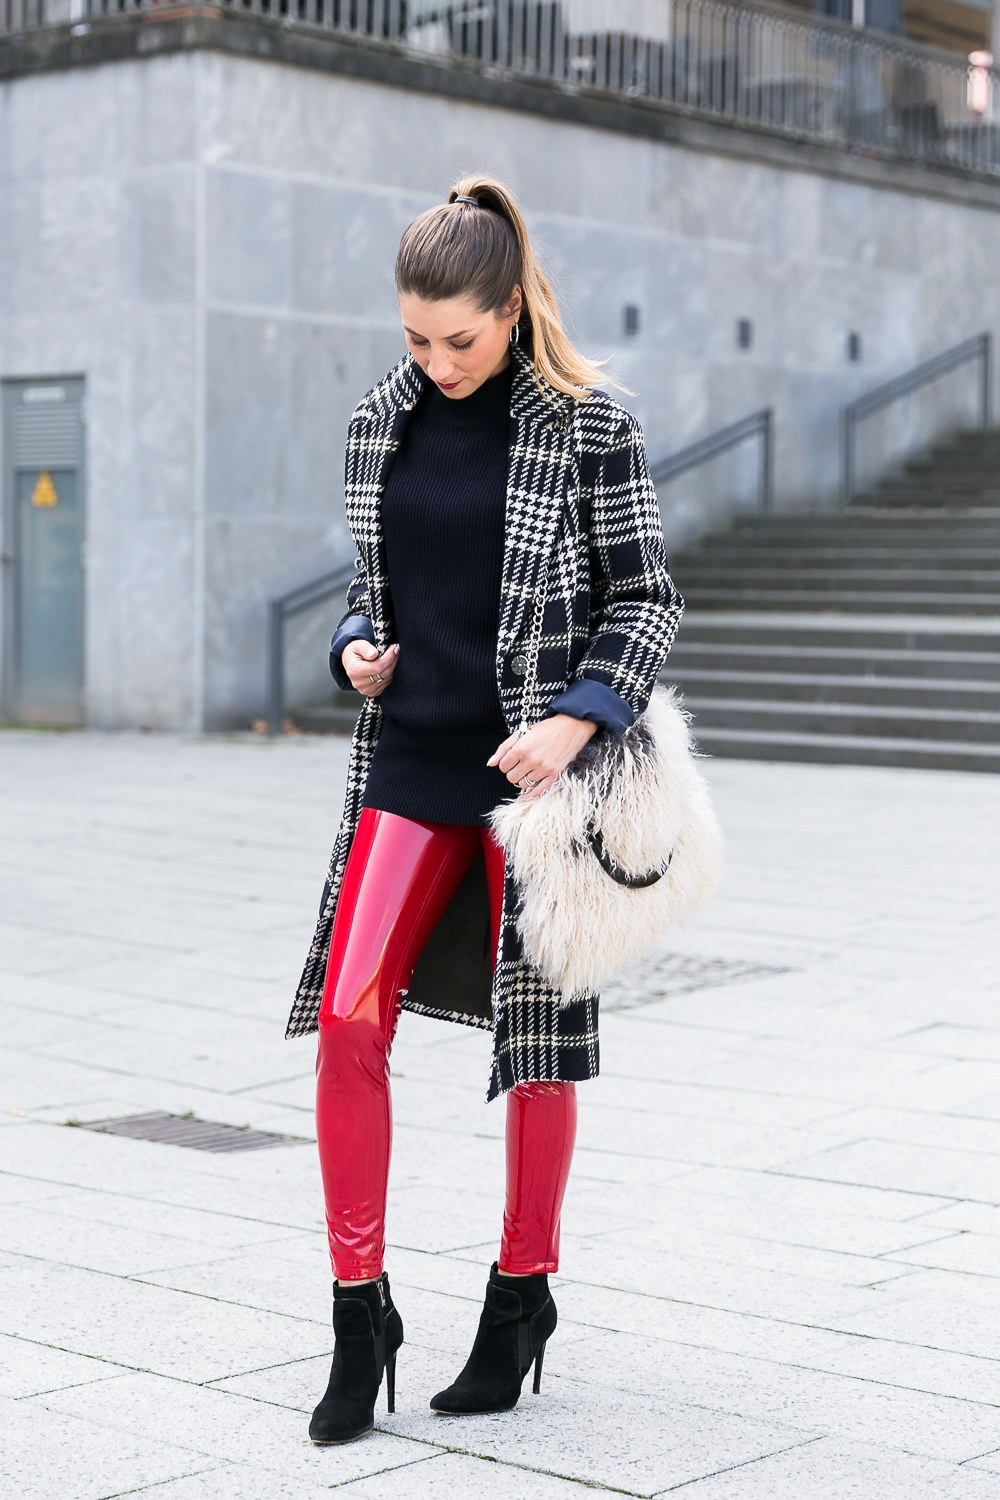 lackhose glencheck mantel street style fashion trends 2017 herbst outfit felltasche hose rot